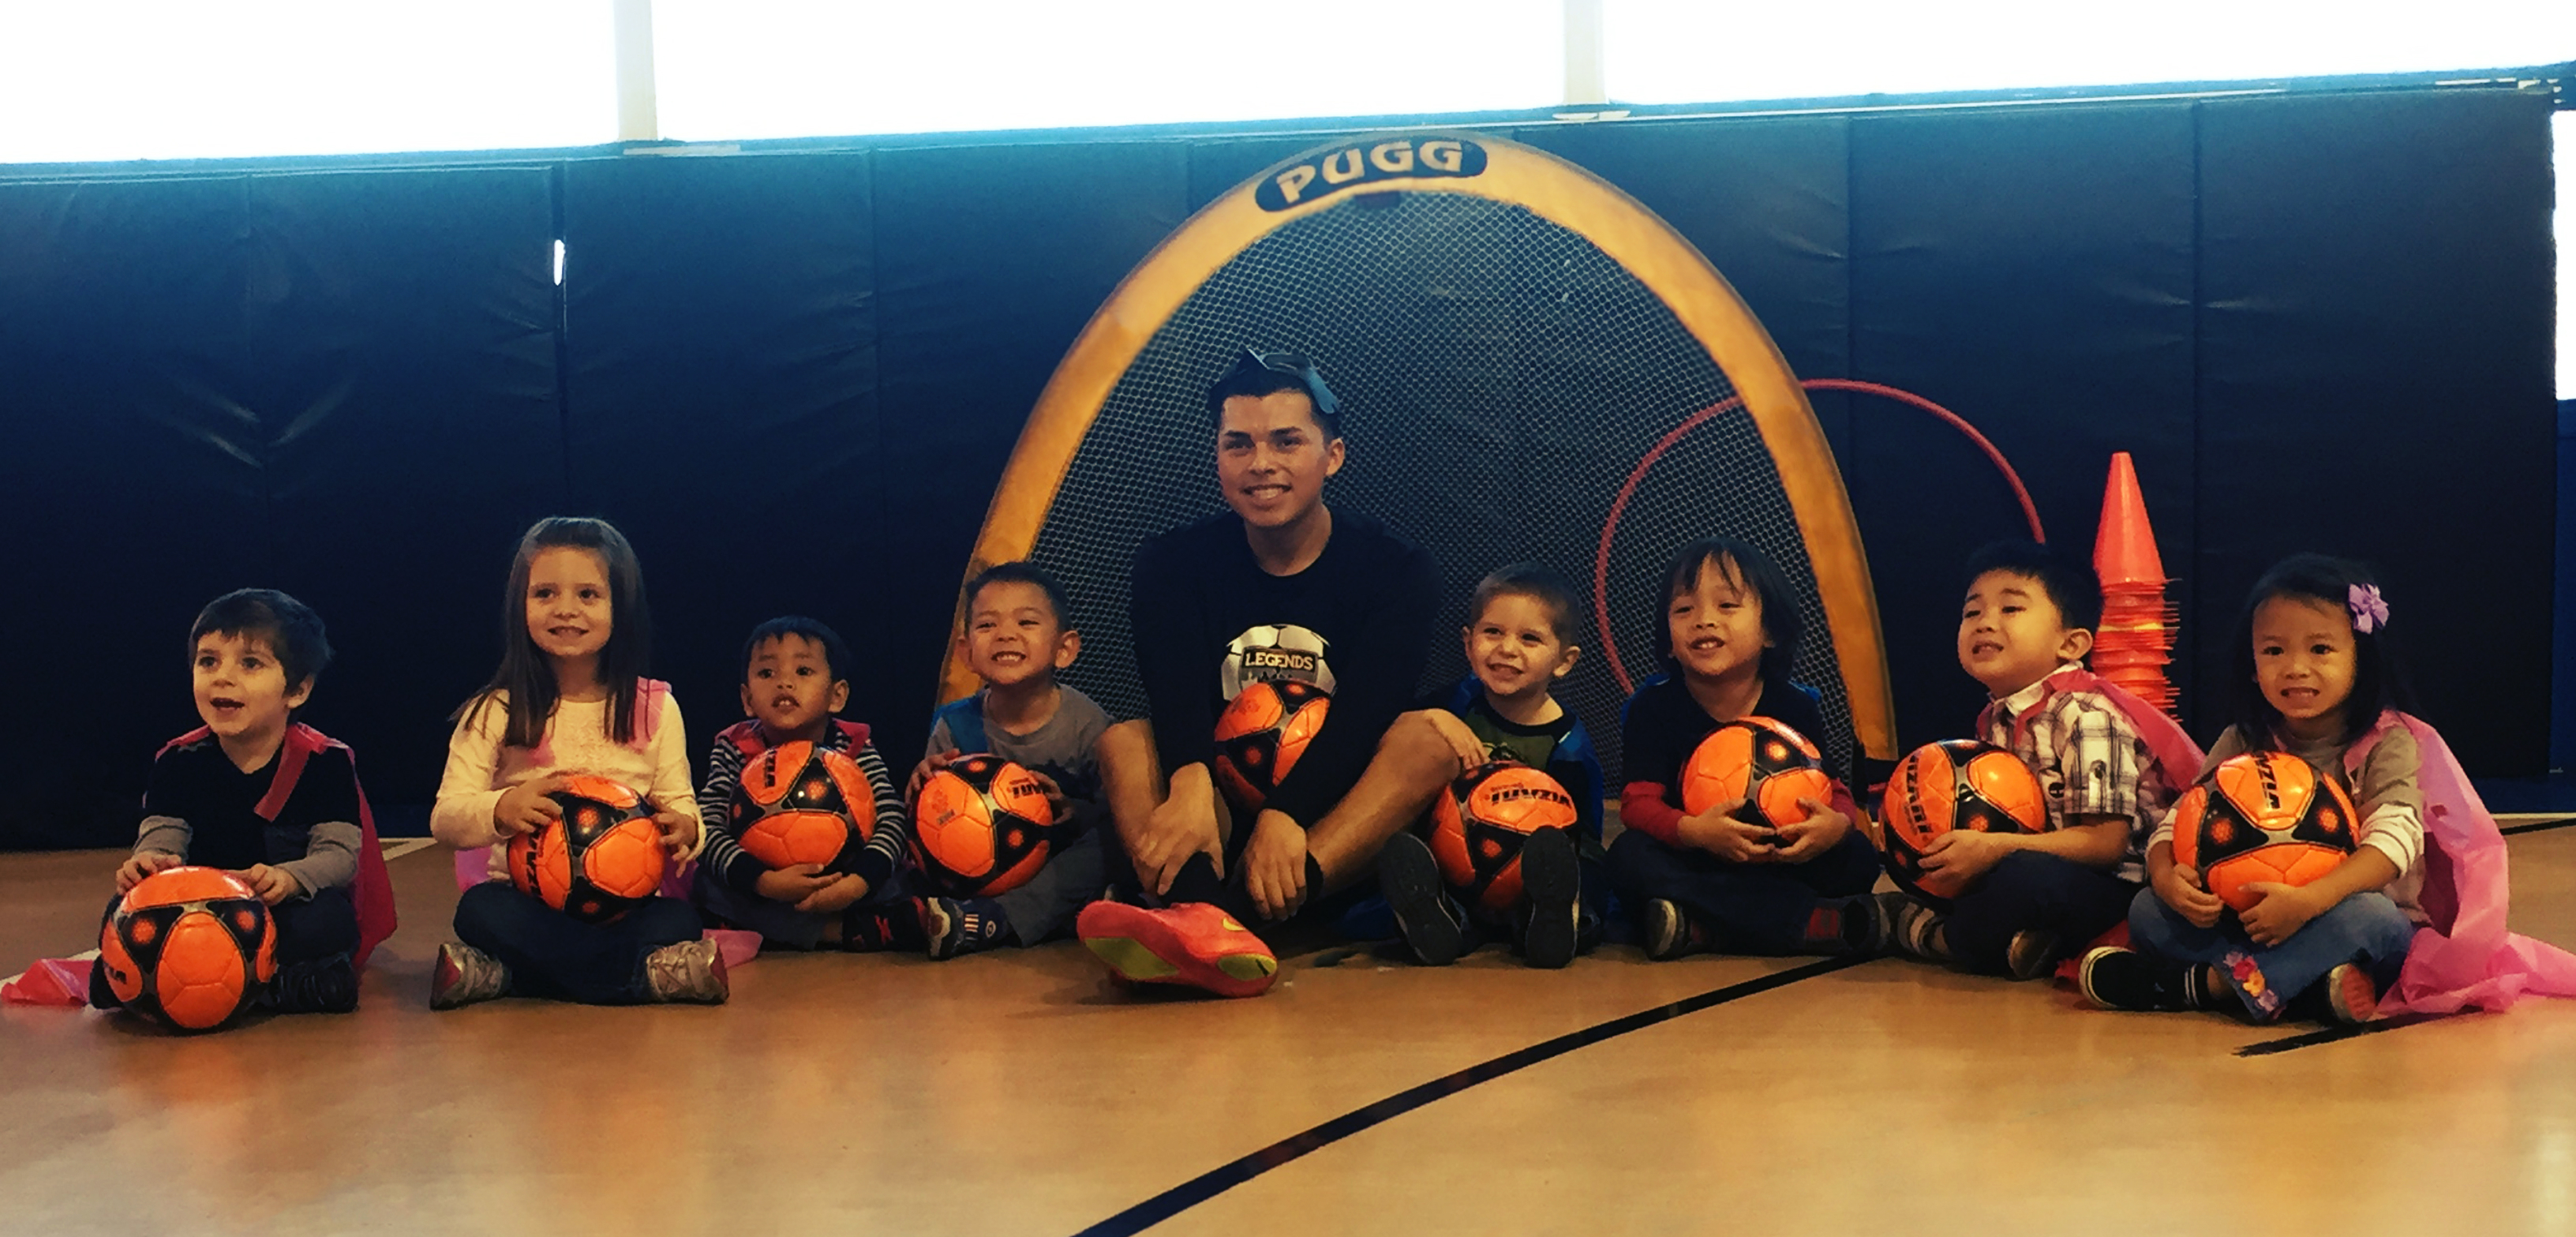 Kids Birthday Party Las Vegas Soccer